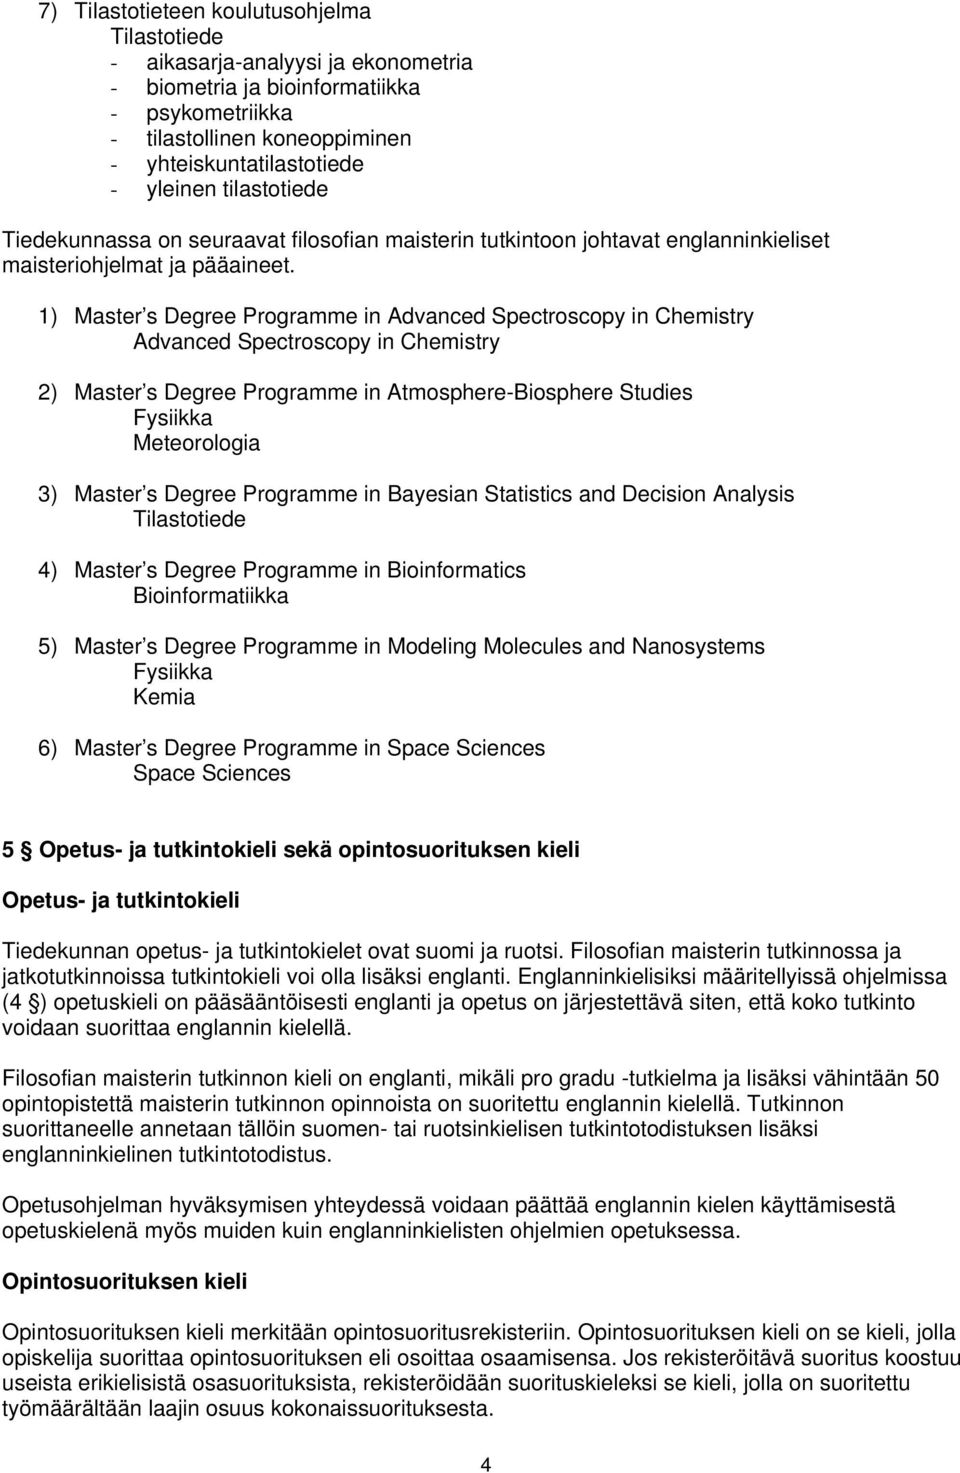 1) Master s Degree Programme in Advanced Spectroscopy in Chemistry Advanced Spectroscopy in Chemistry 2) Master s Degree Programme in Atmosphere-Biosphere Studies Fysiikka Meteorologia 3) Master s